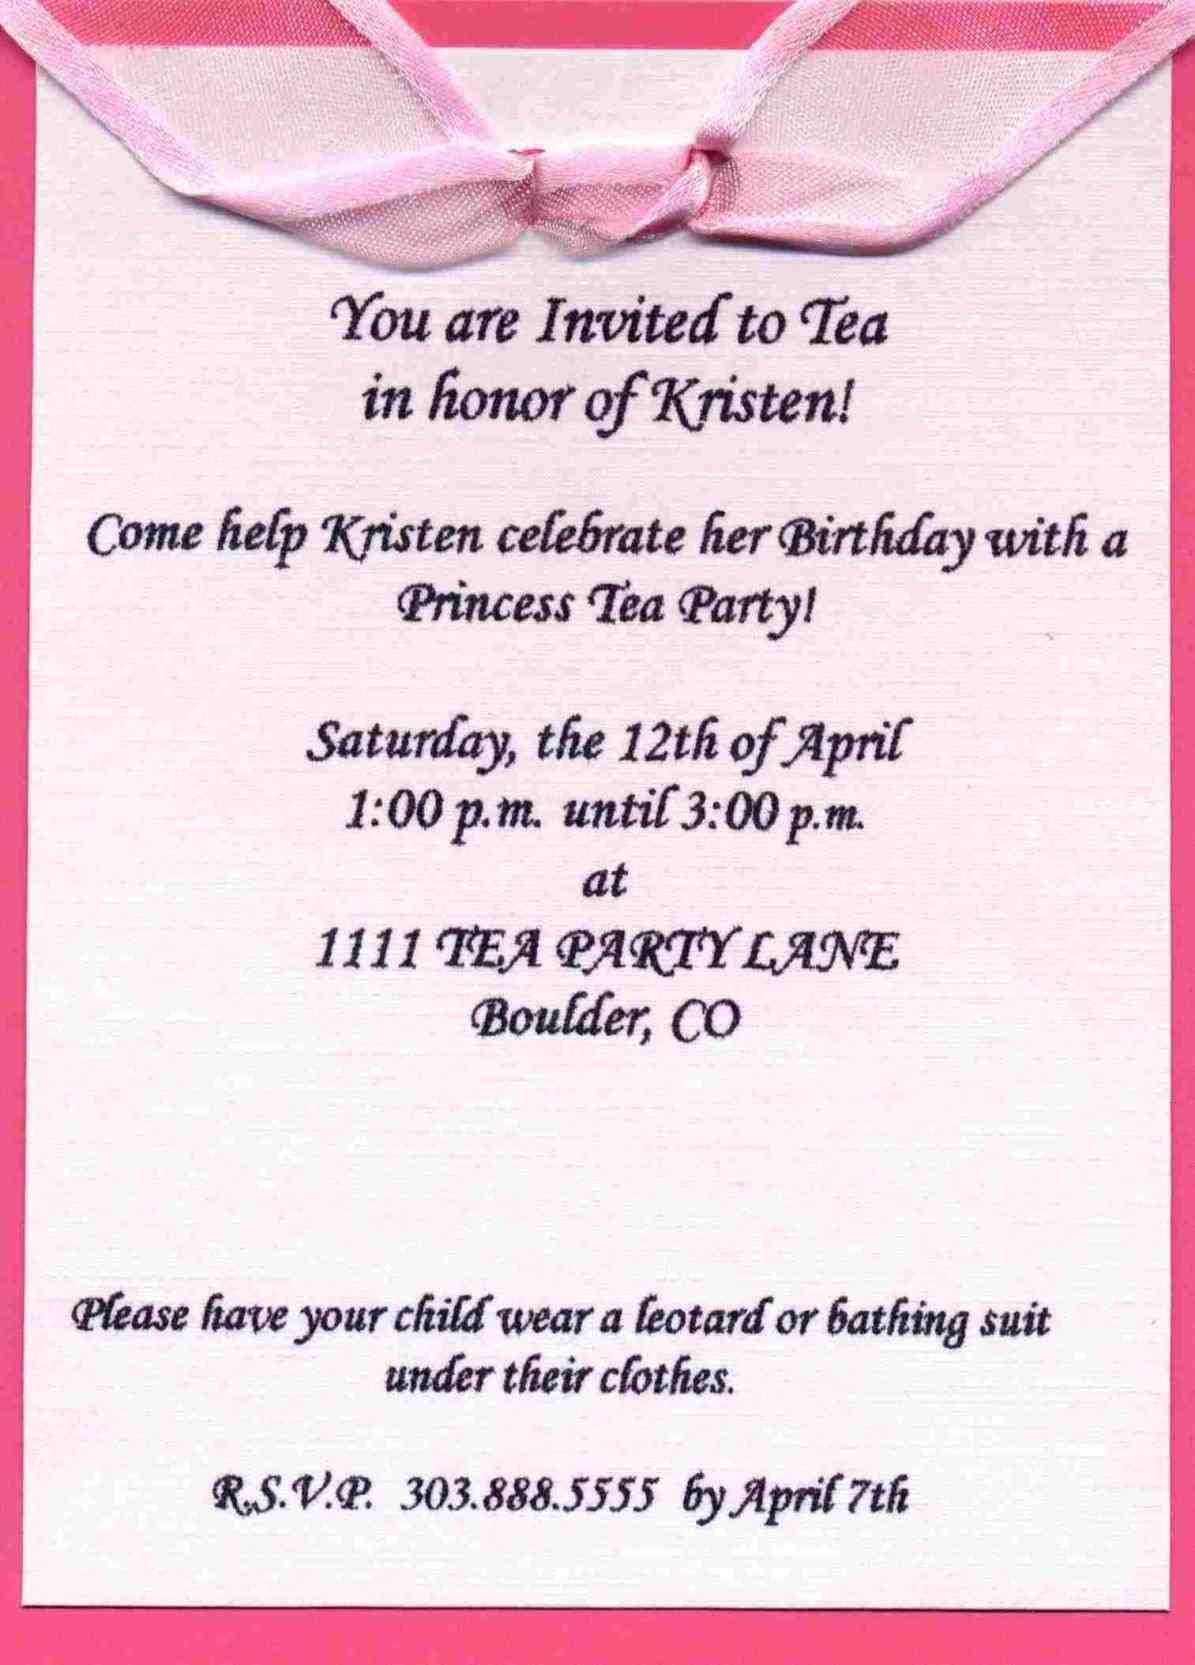 Invitation Cards For Adults With Church Invite Full Size Of Colors60th Birthday Ideas Plus 60th Party Invitations Mom